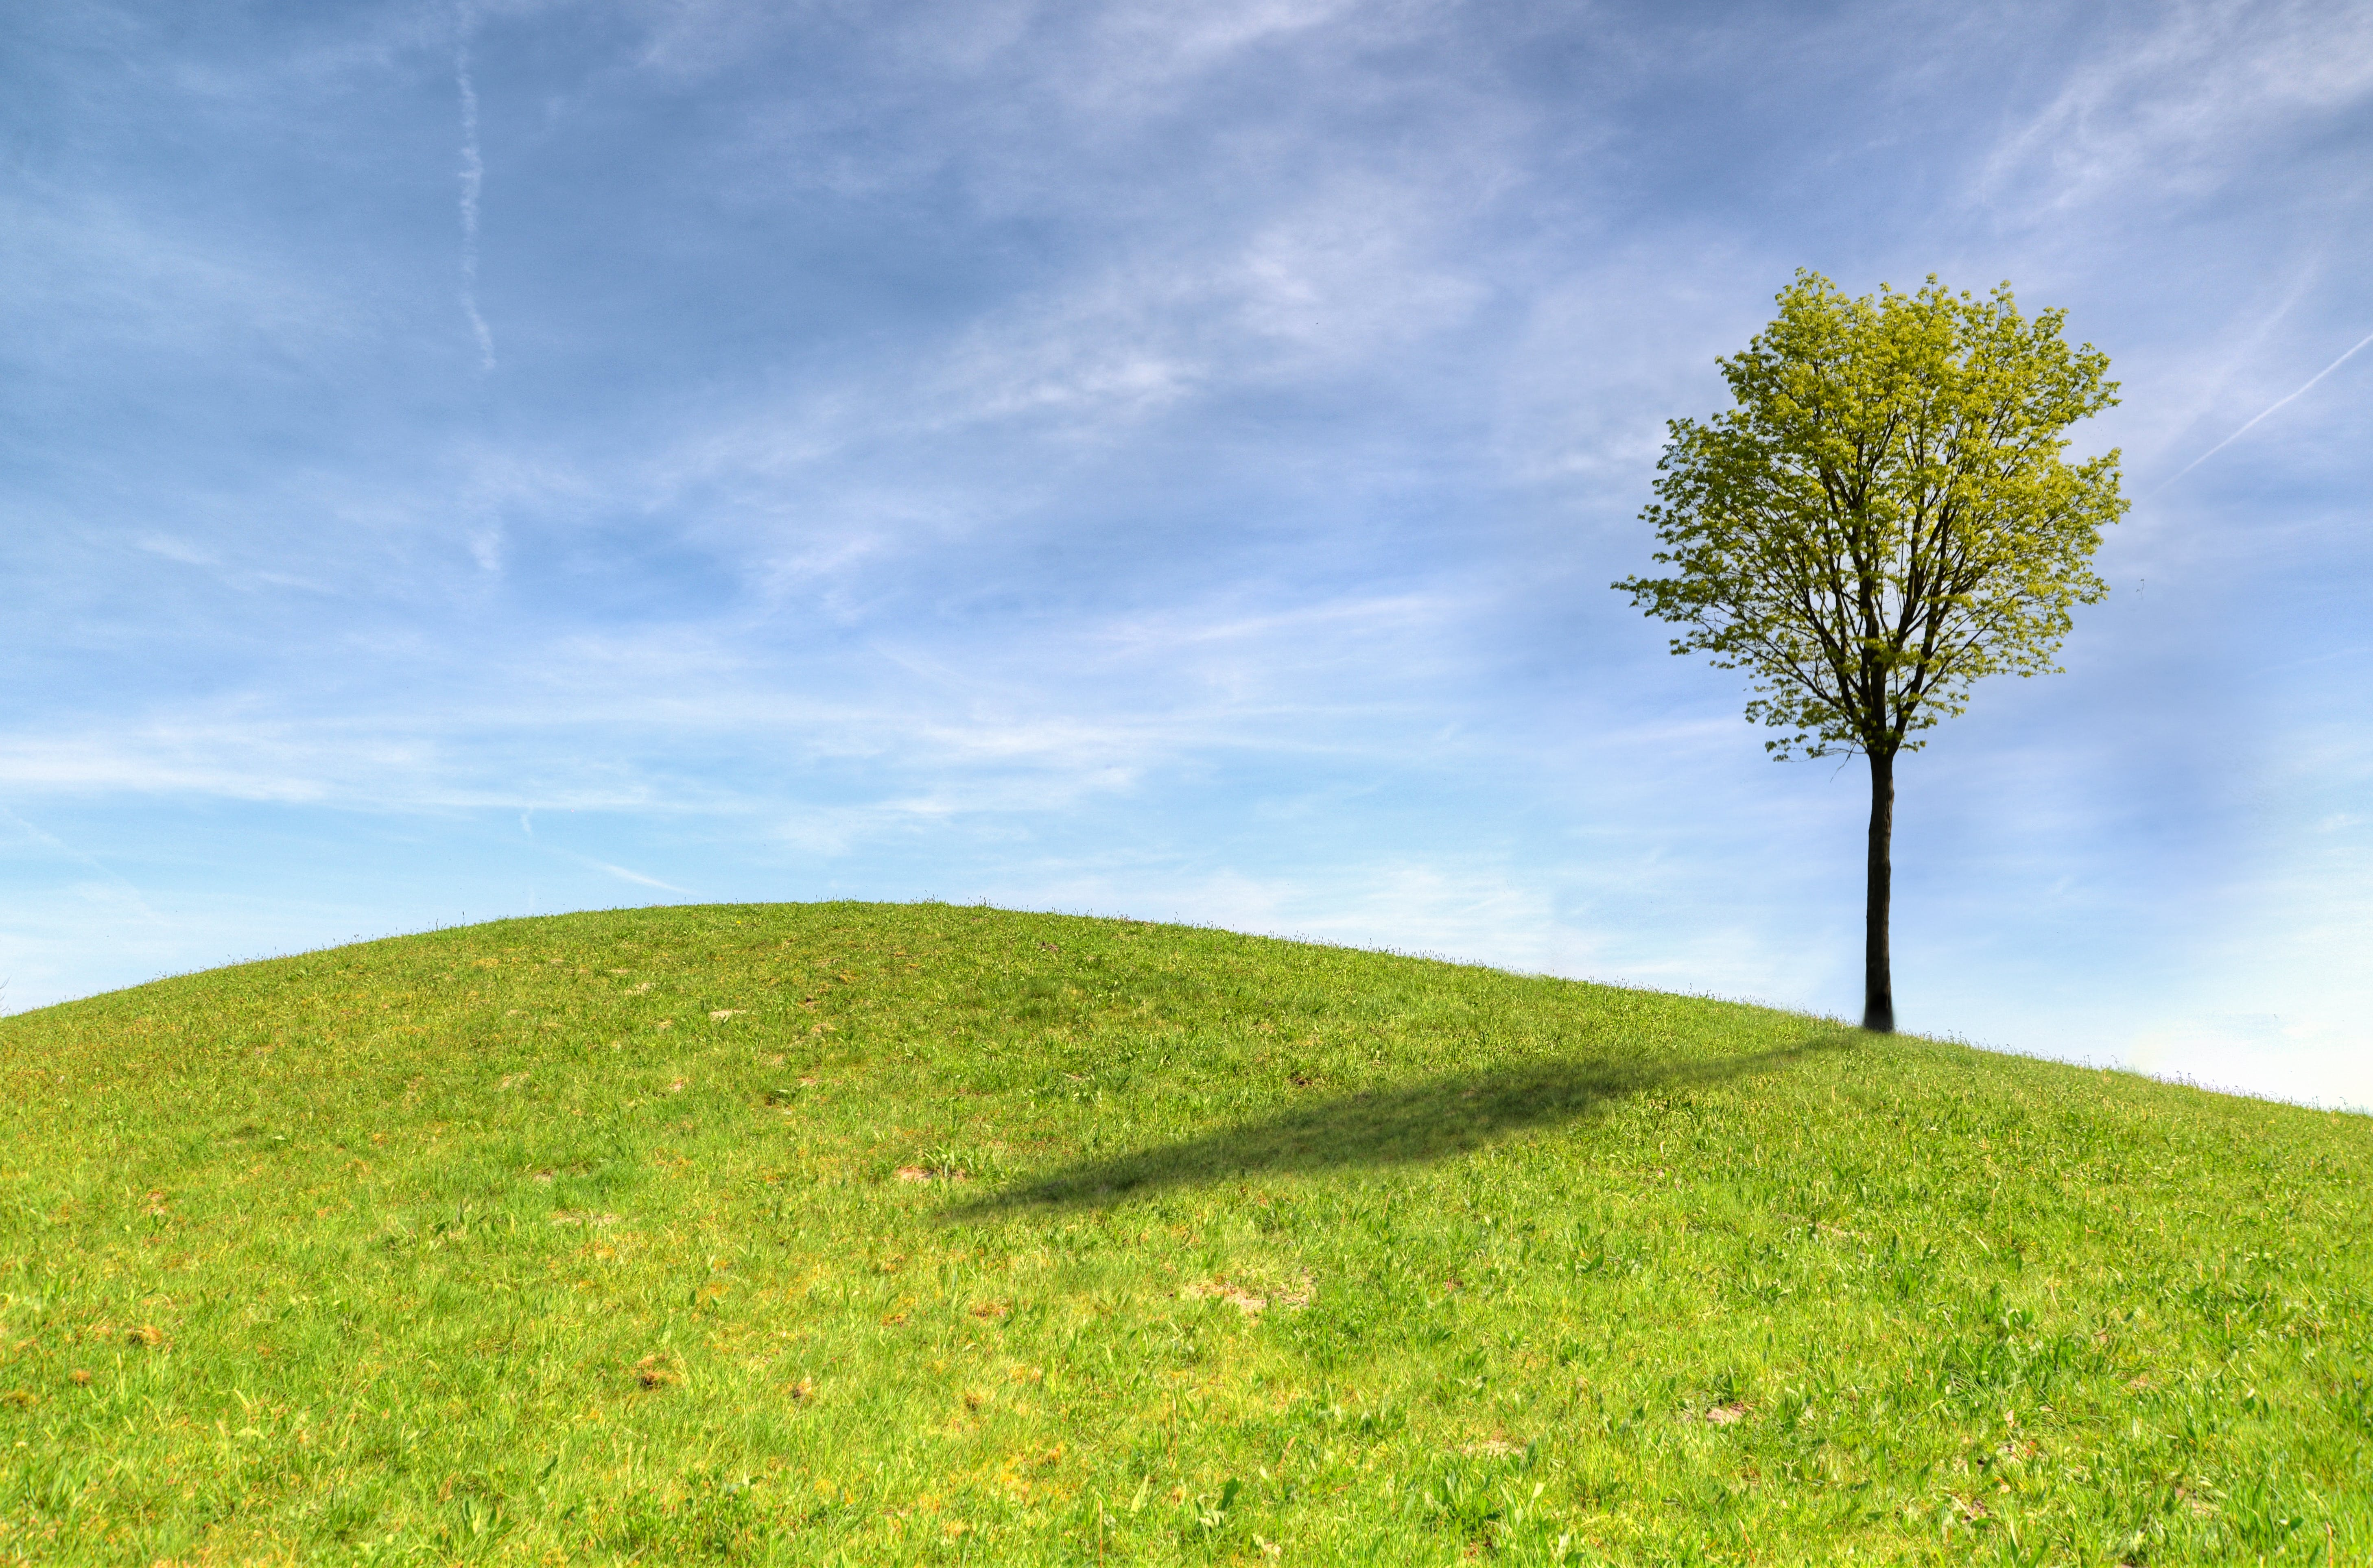 Green Tree on Green Grass Field Under White Clouds and Blue Sky